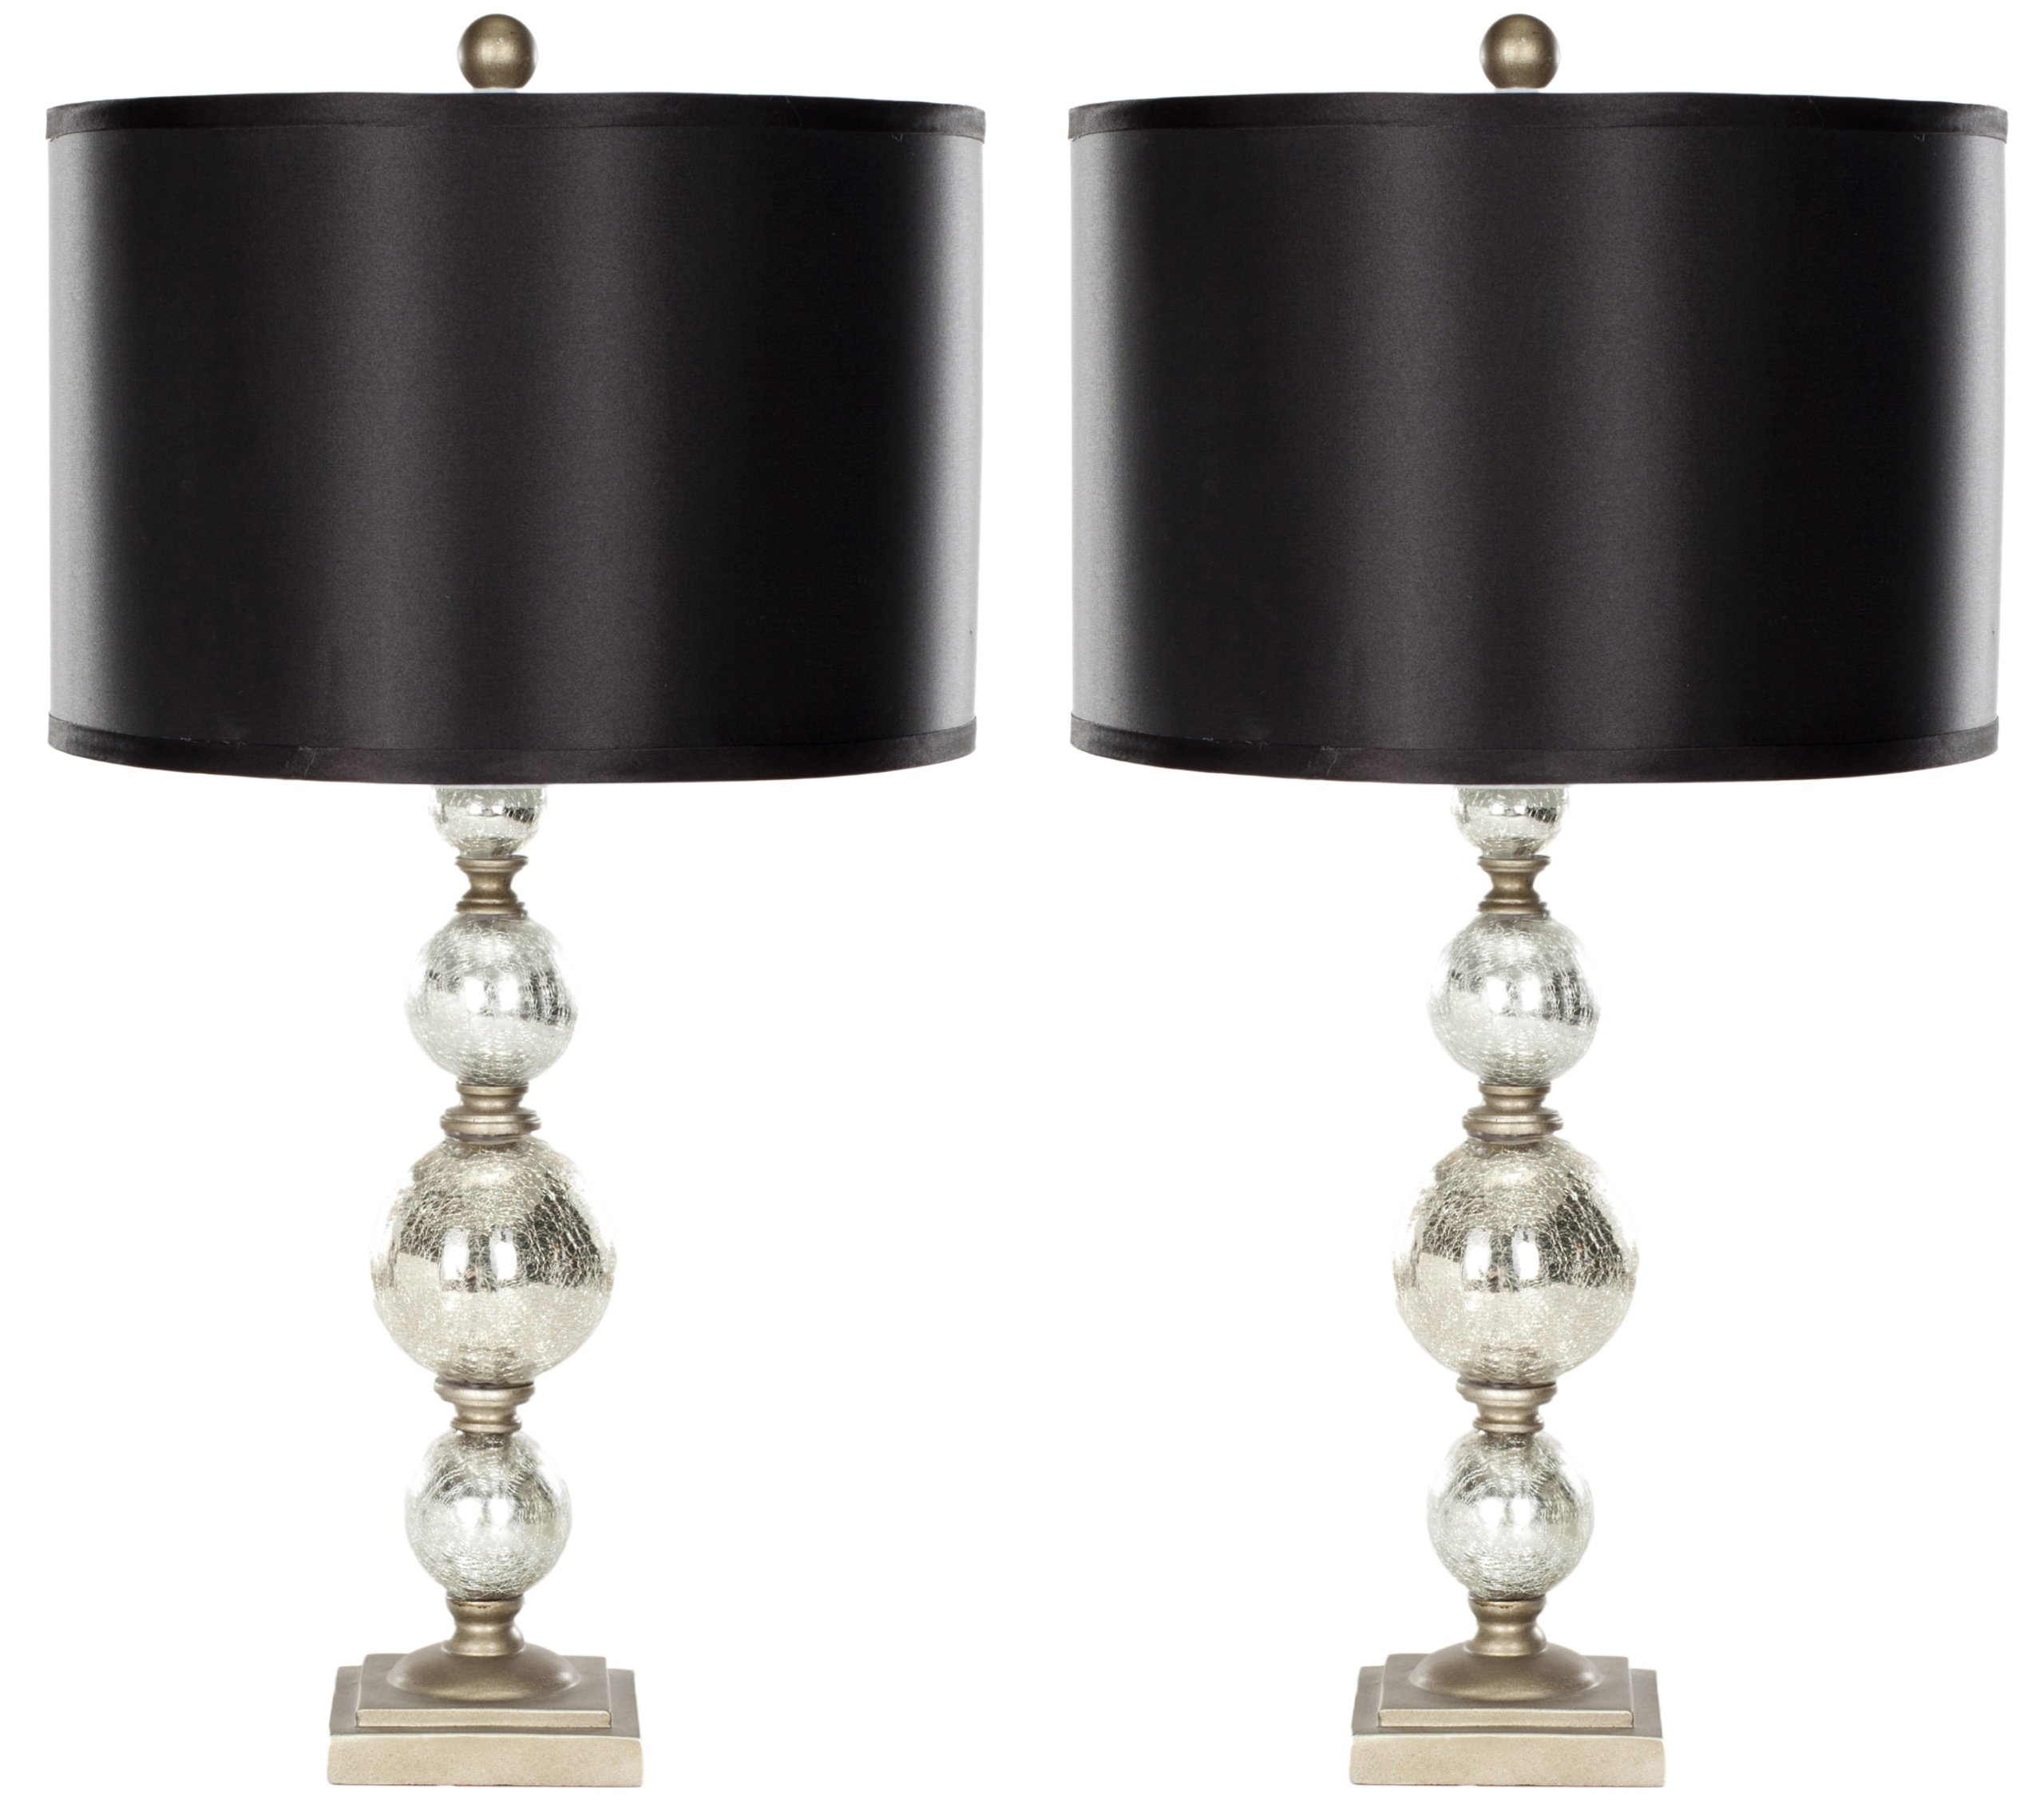 Safavieh Lighting Collection Nettie Mercury Glass 28-inch Table Lamp (Set of 2)